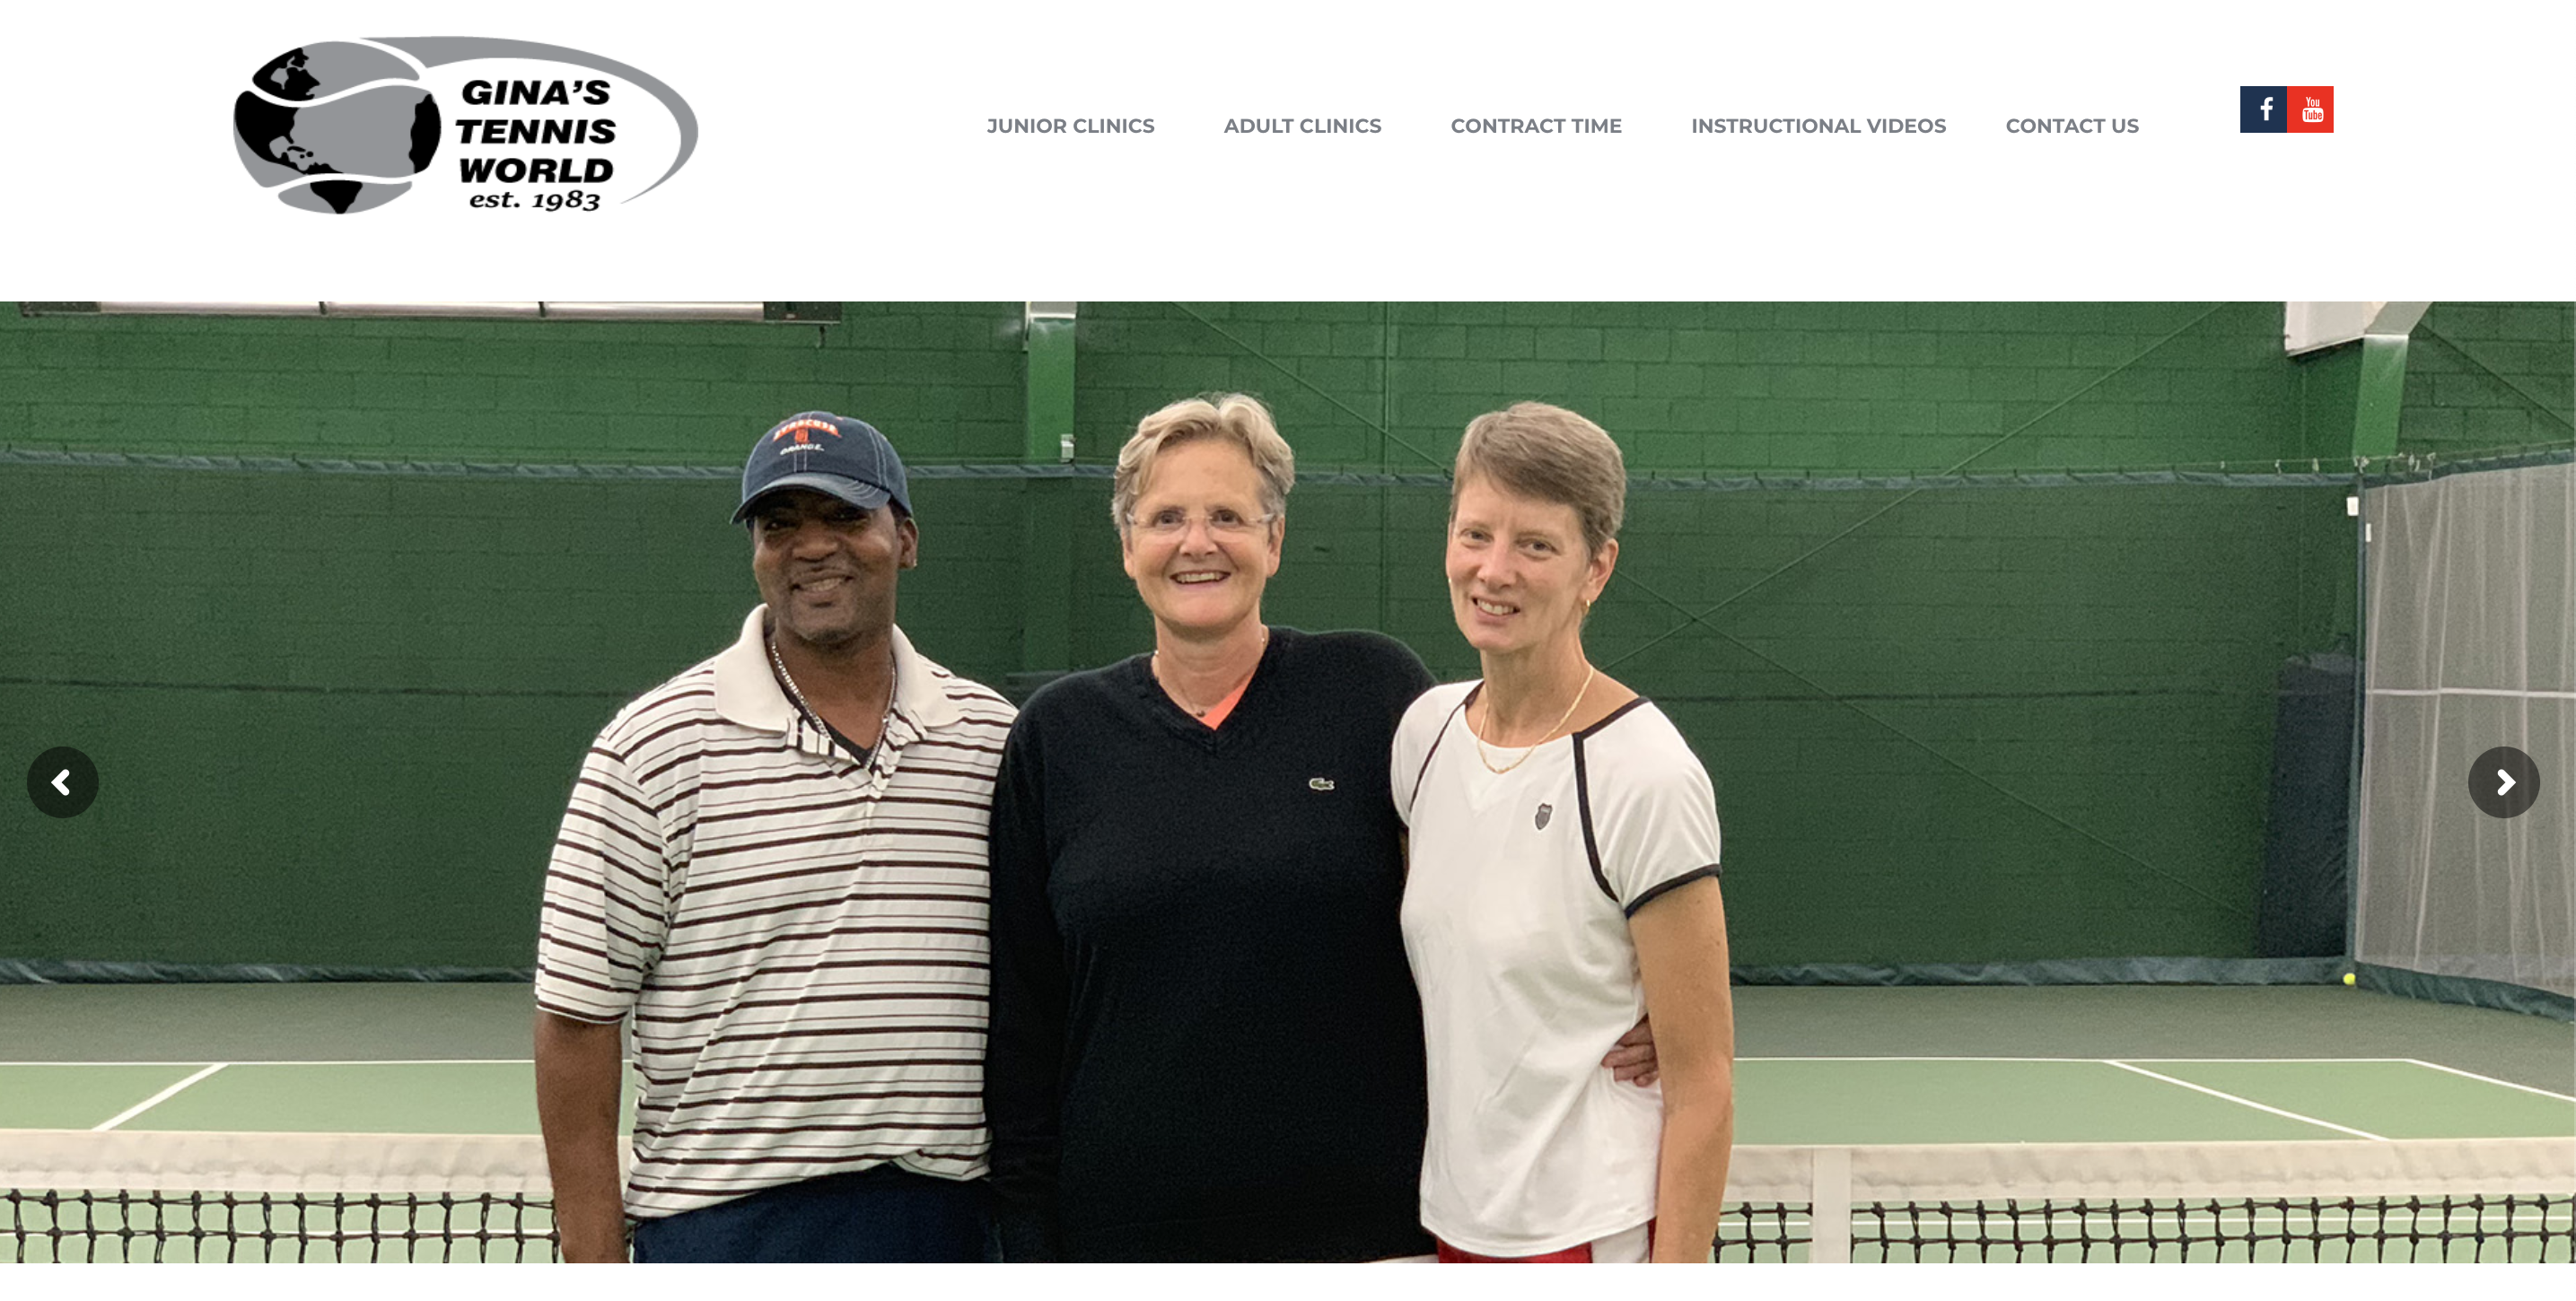 Kind Technology Services working with Gina's Tennis World